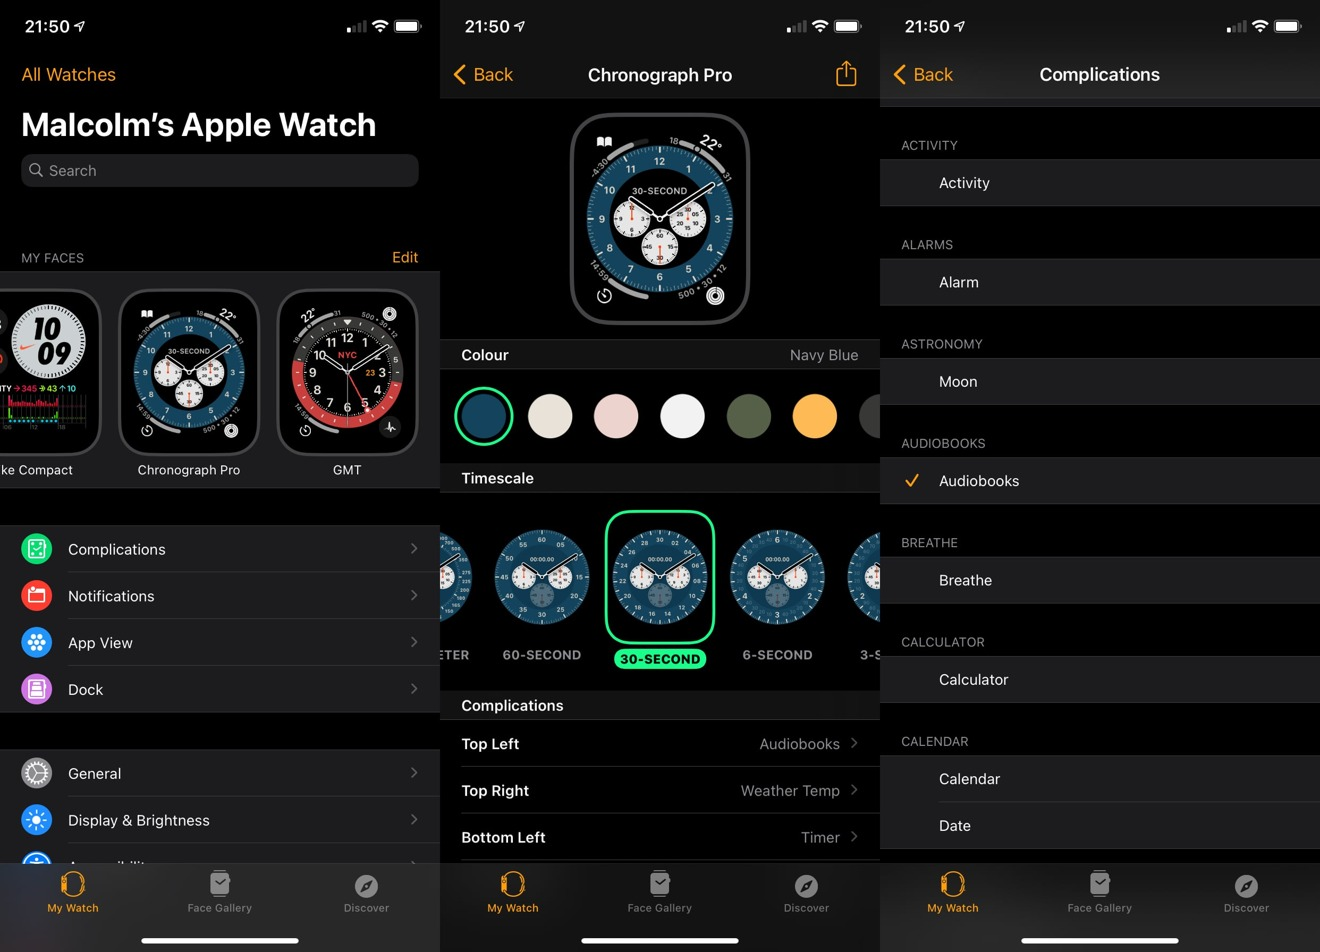 Changes dial attributes and complications via the iPhone Watch app.